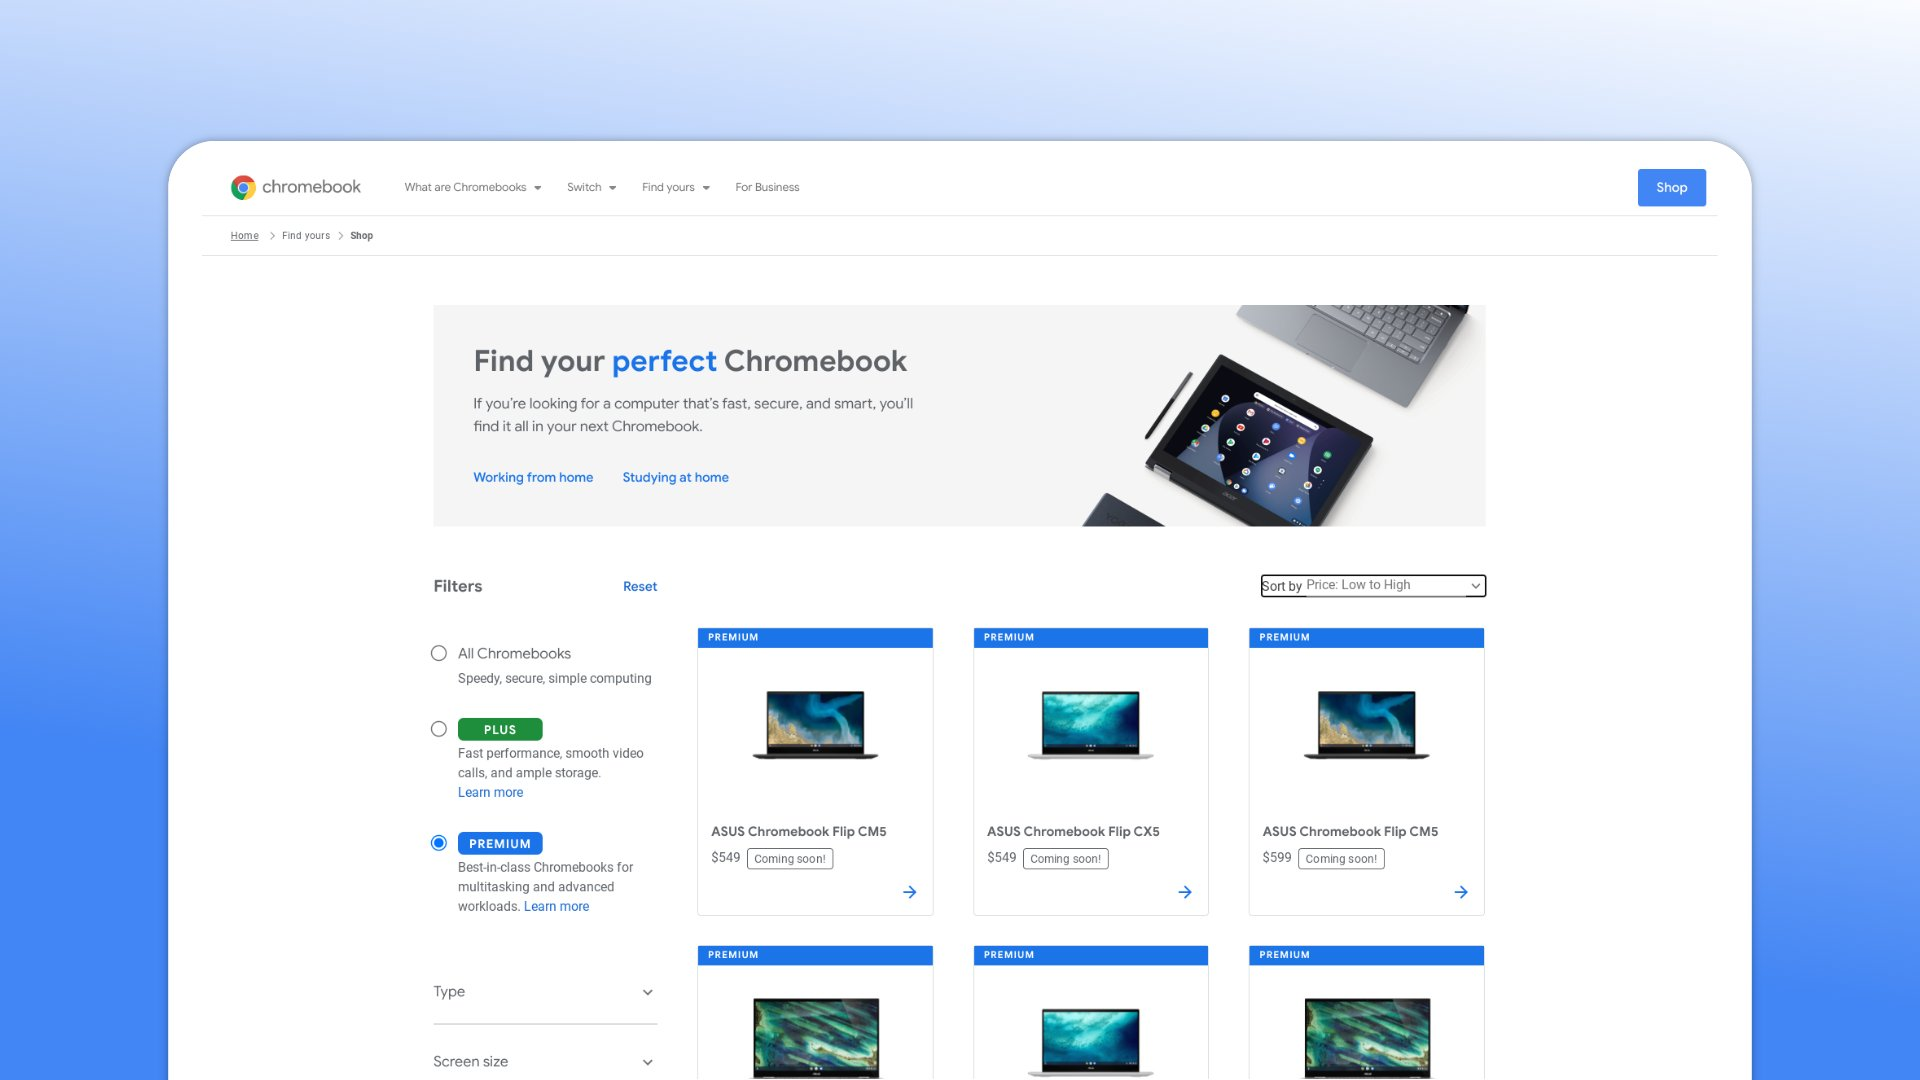 ASUS Chromebook Flip CX5 and CM5 appear on Google's Chromebook page with pricing info